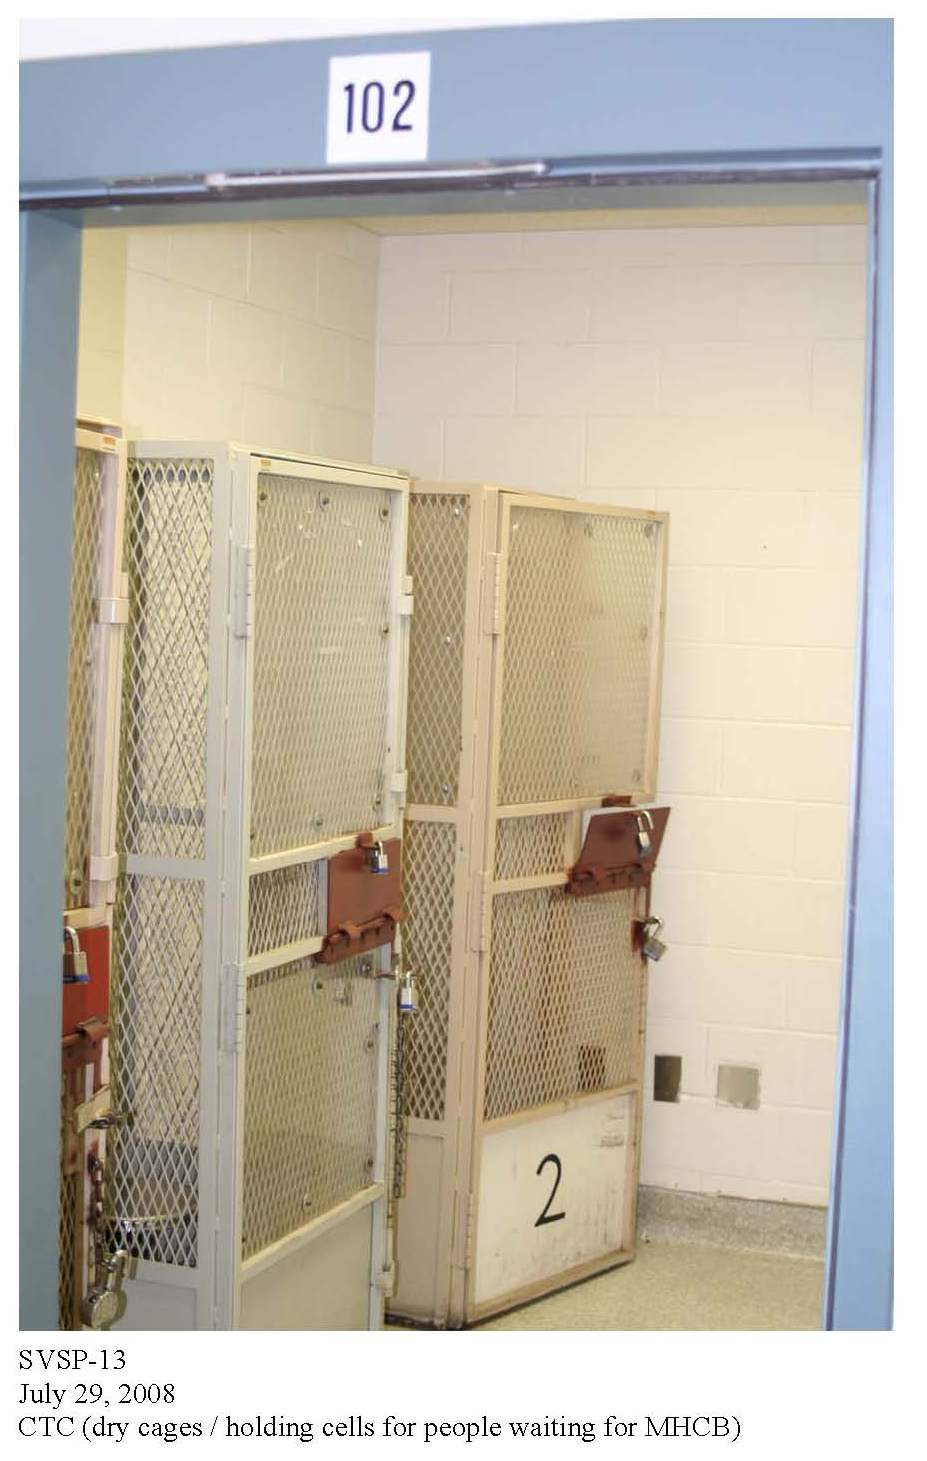 P-338-SVSP-13-Dry-Cages-or-Holding-Cells-for-People-Waiting-for-MHCB